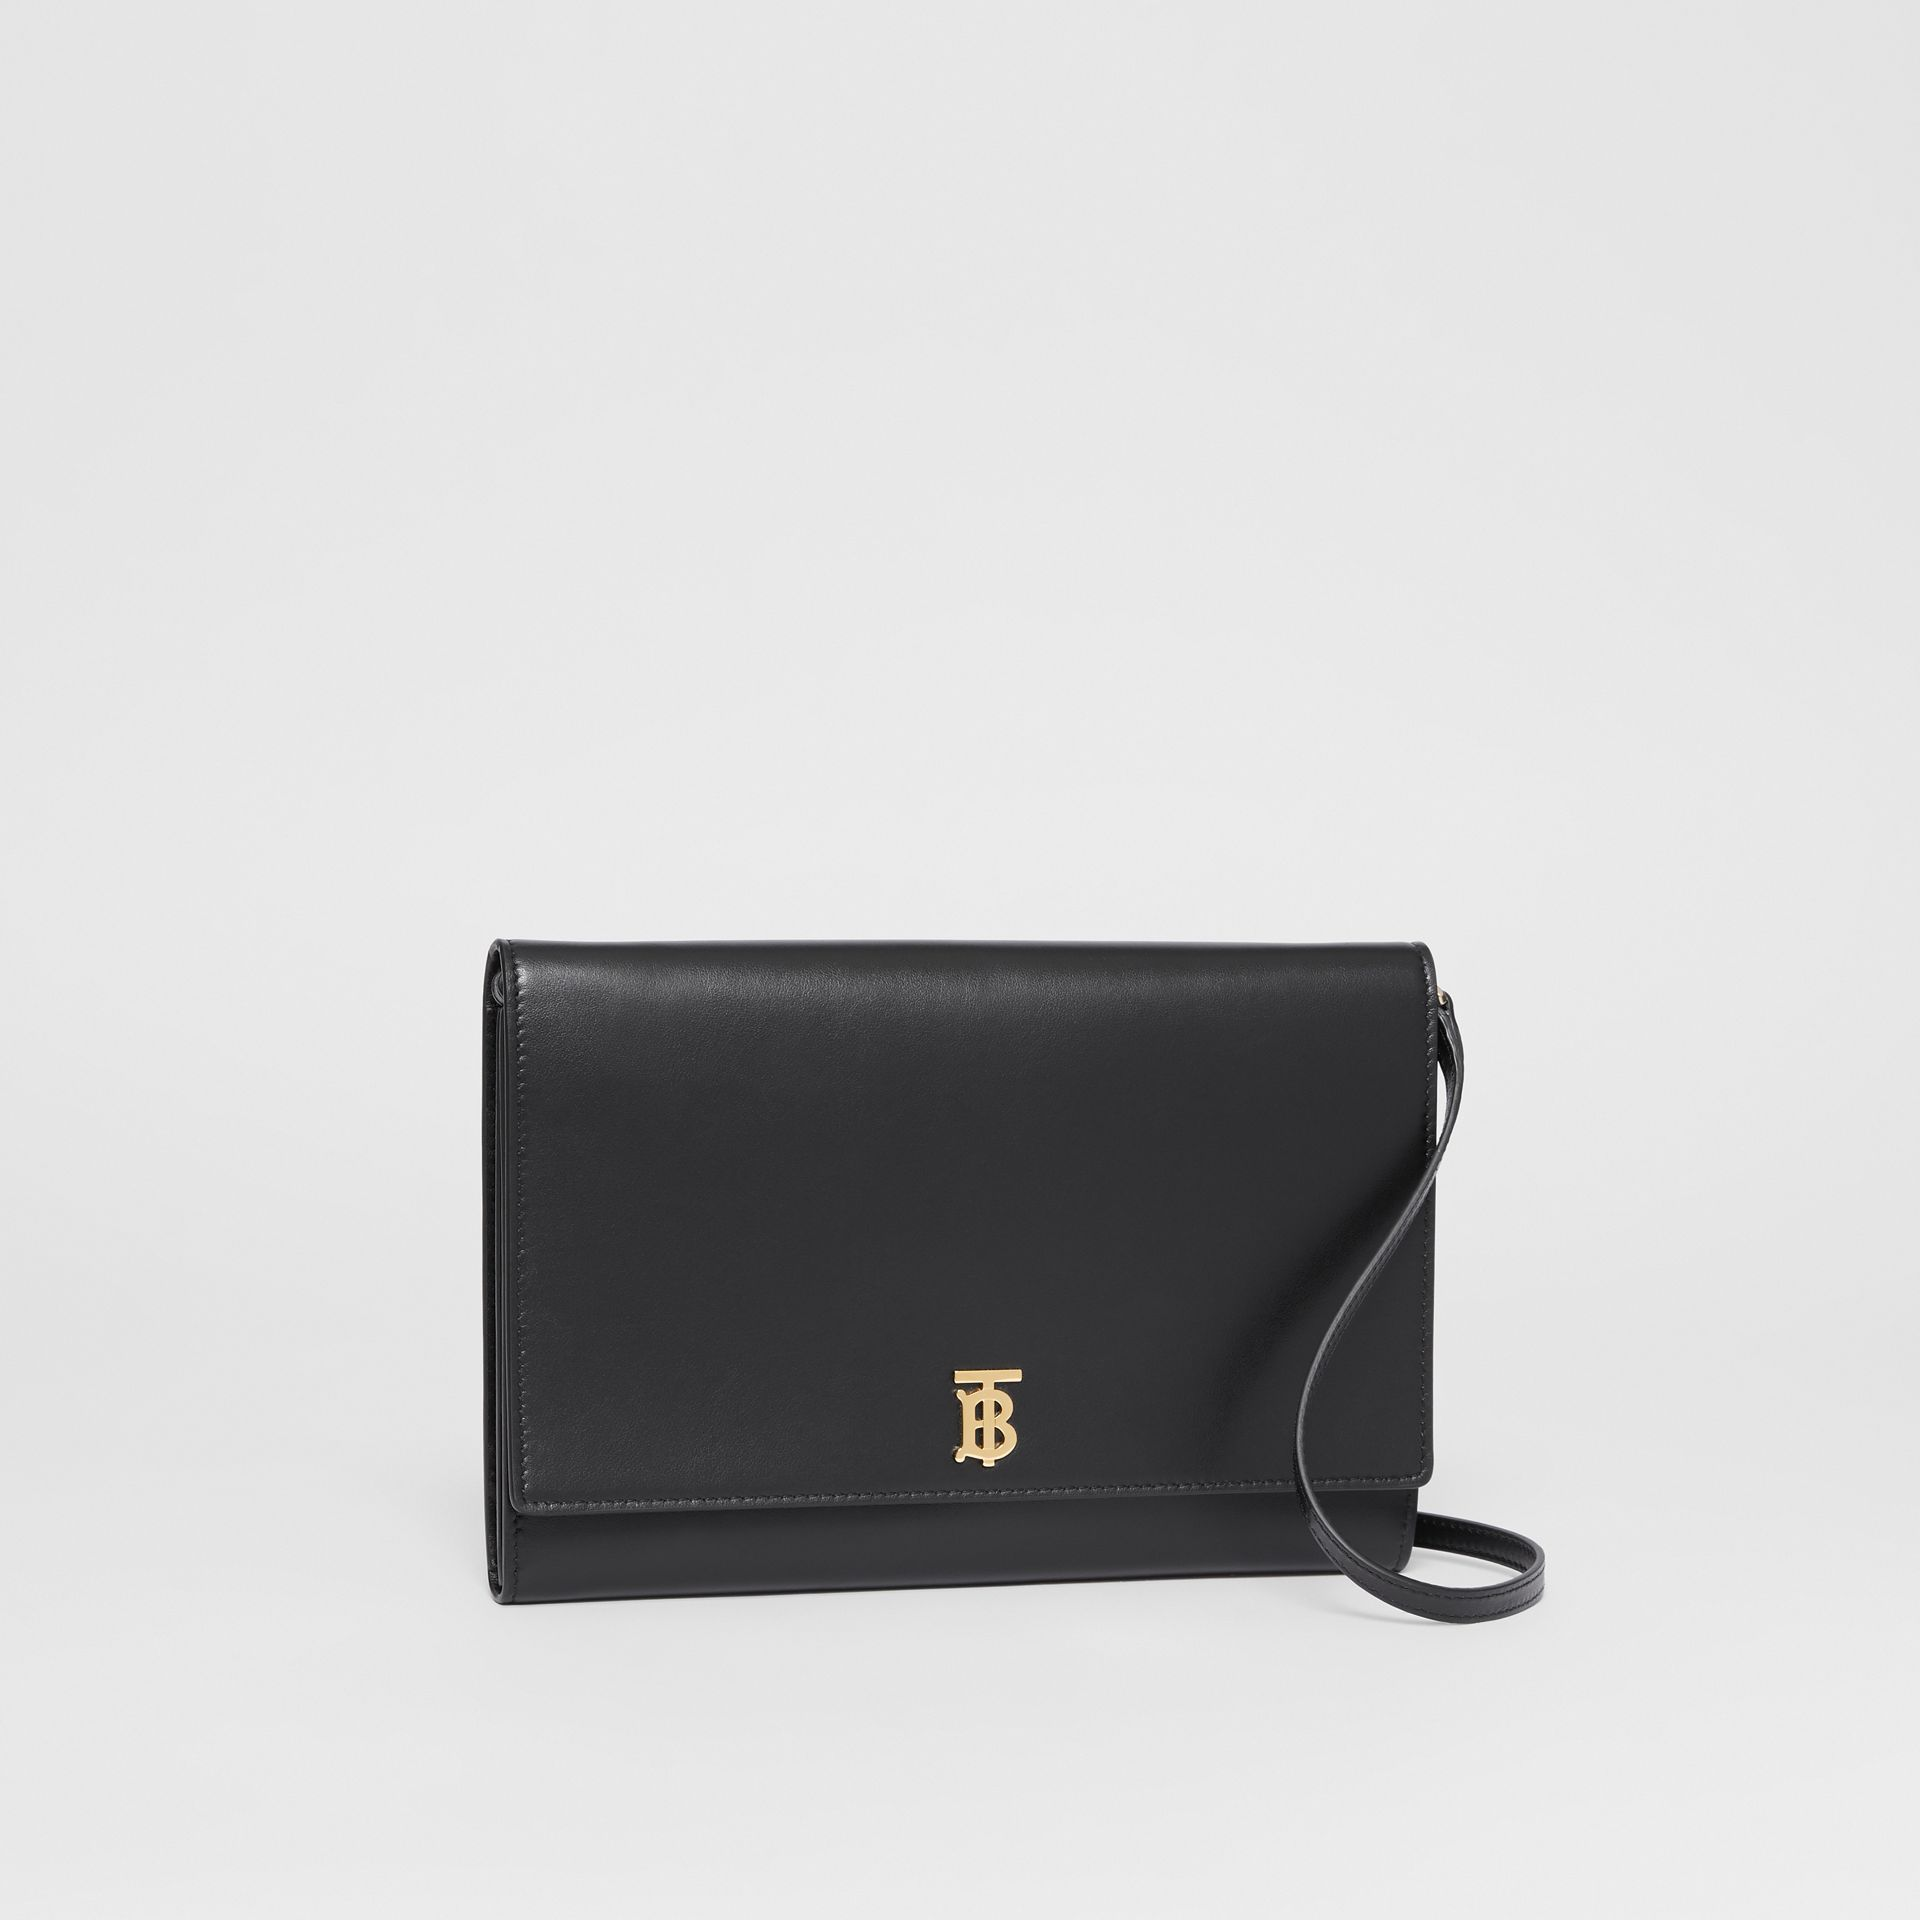 Monogram Motif Leather Bag with Detachable Strap in Black - Women | Burberry Canada - gallery image 6